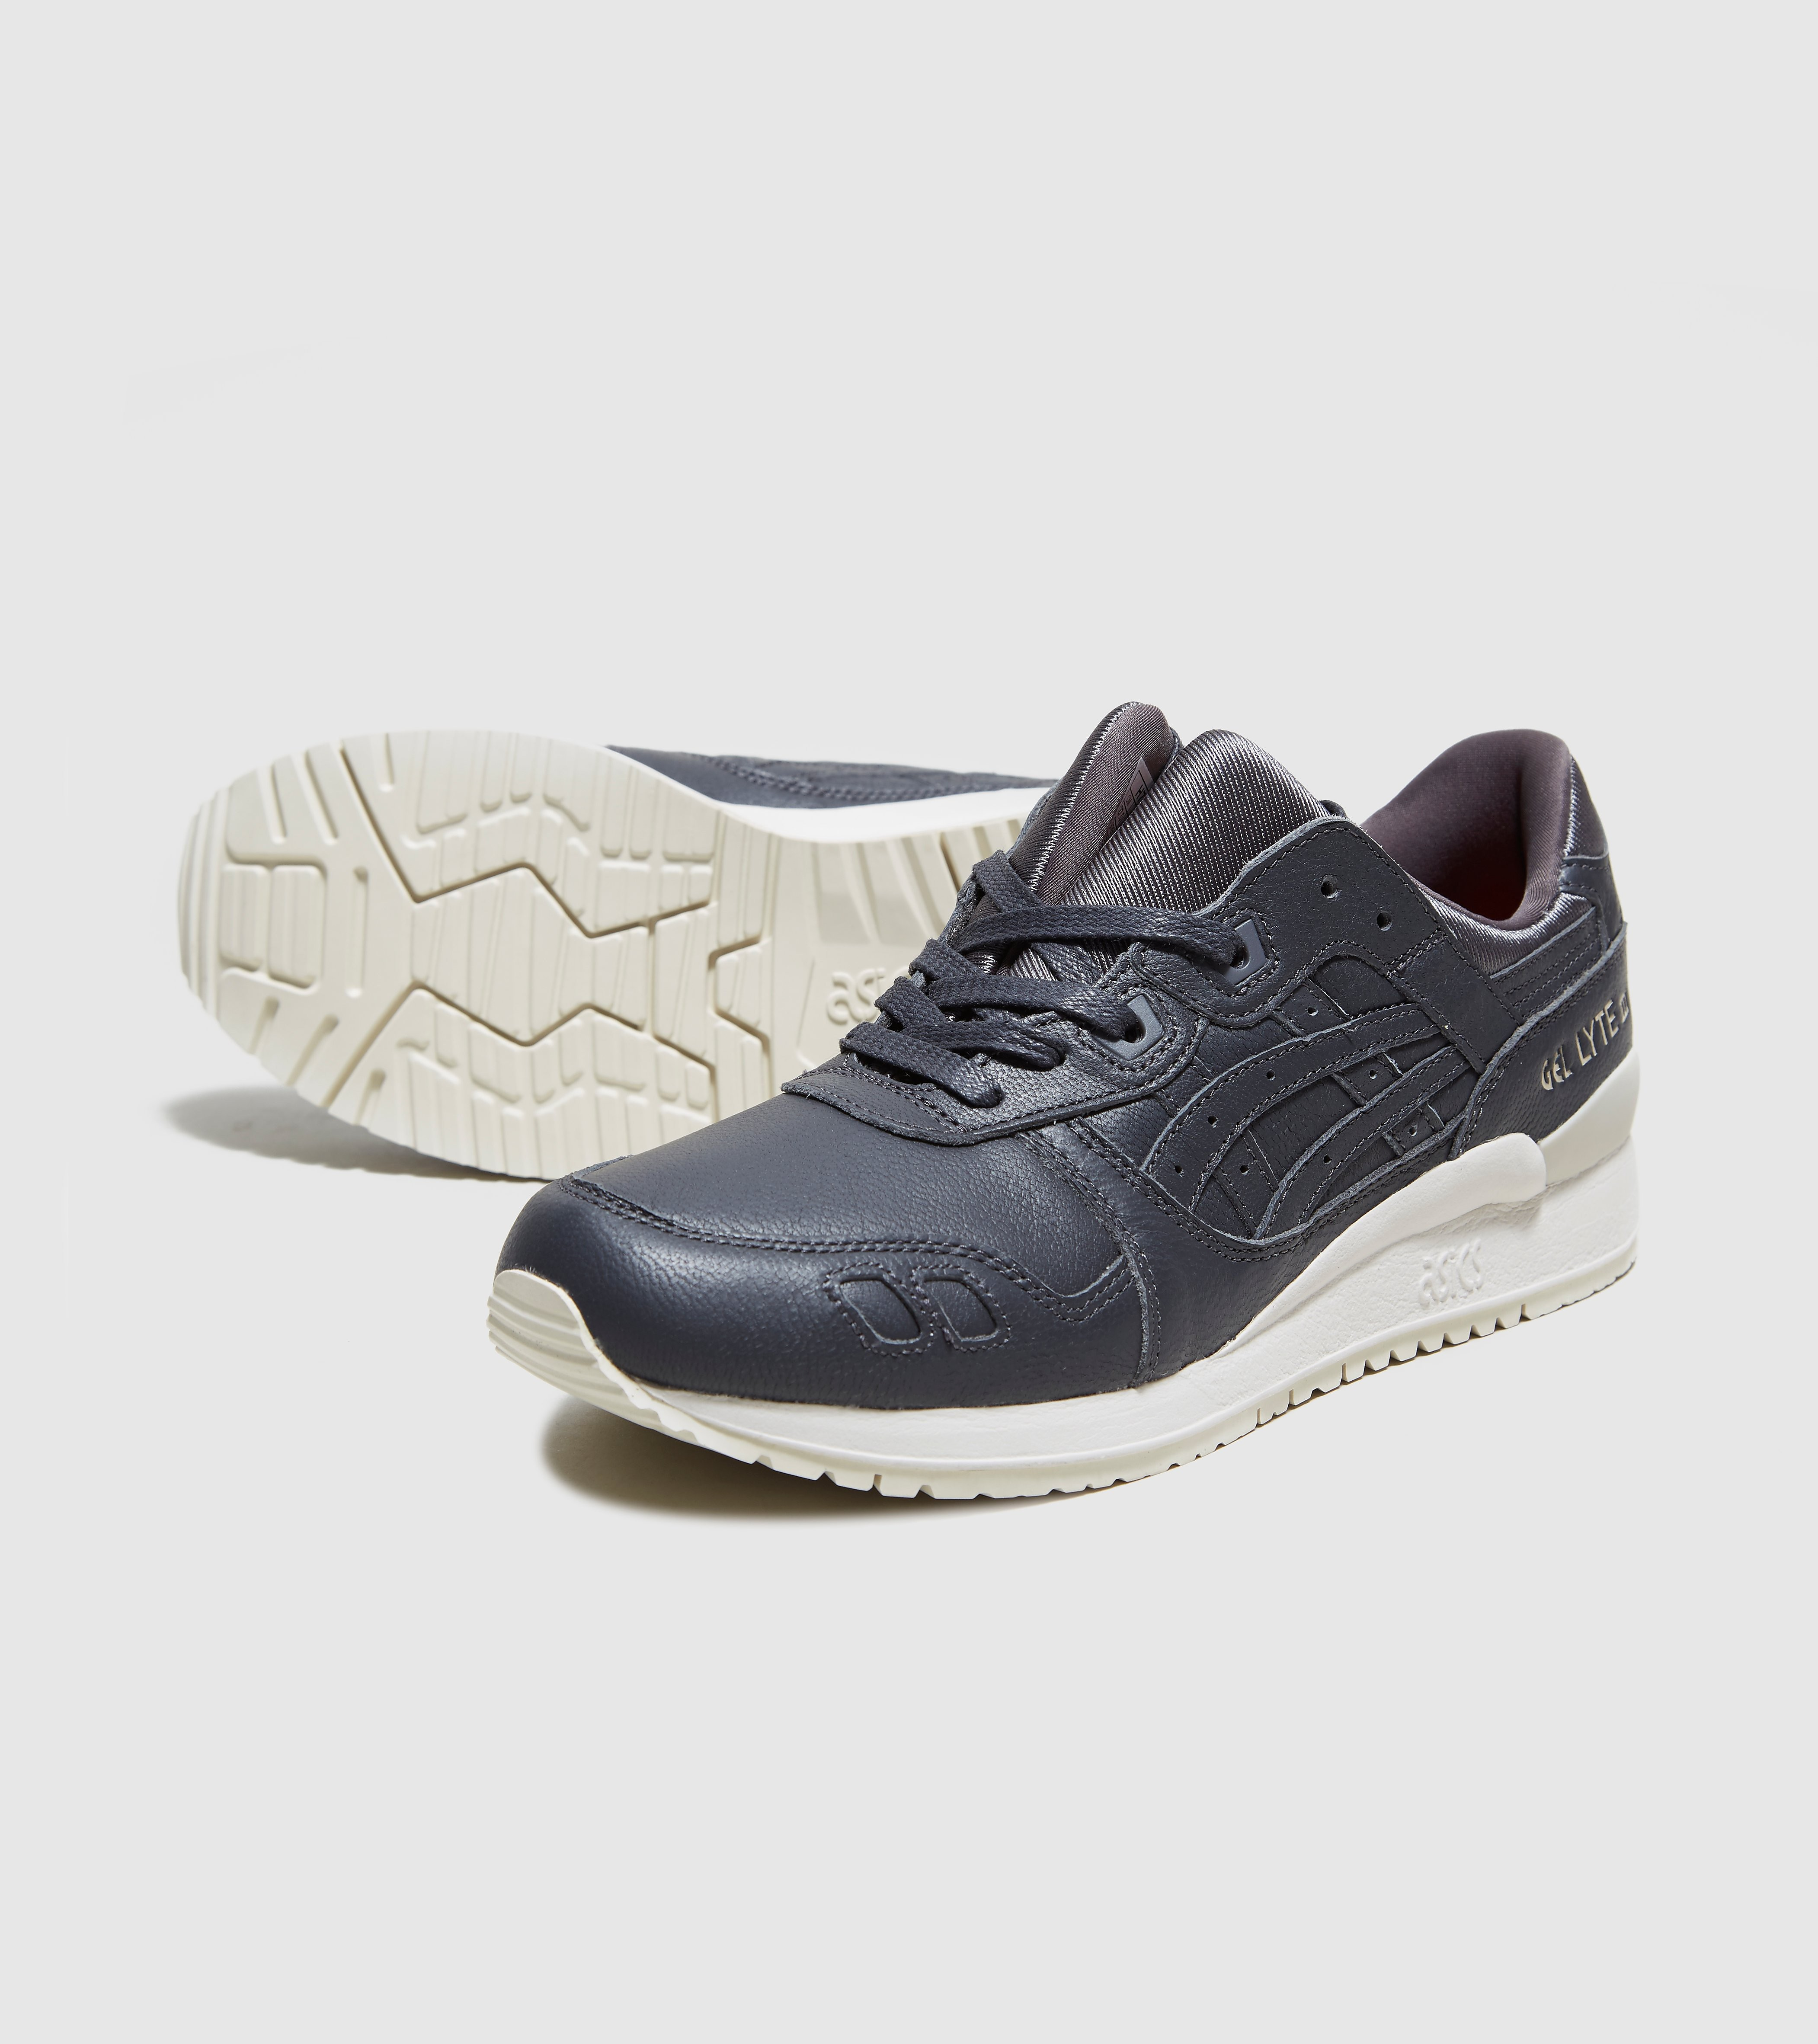 ASICS GEL-Lyte III Leather